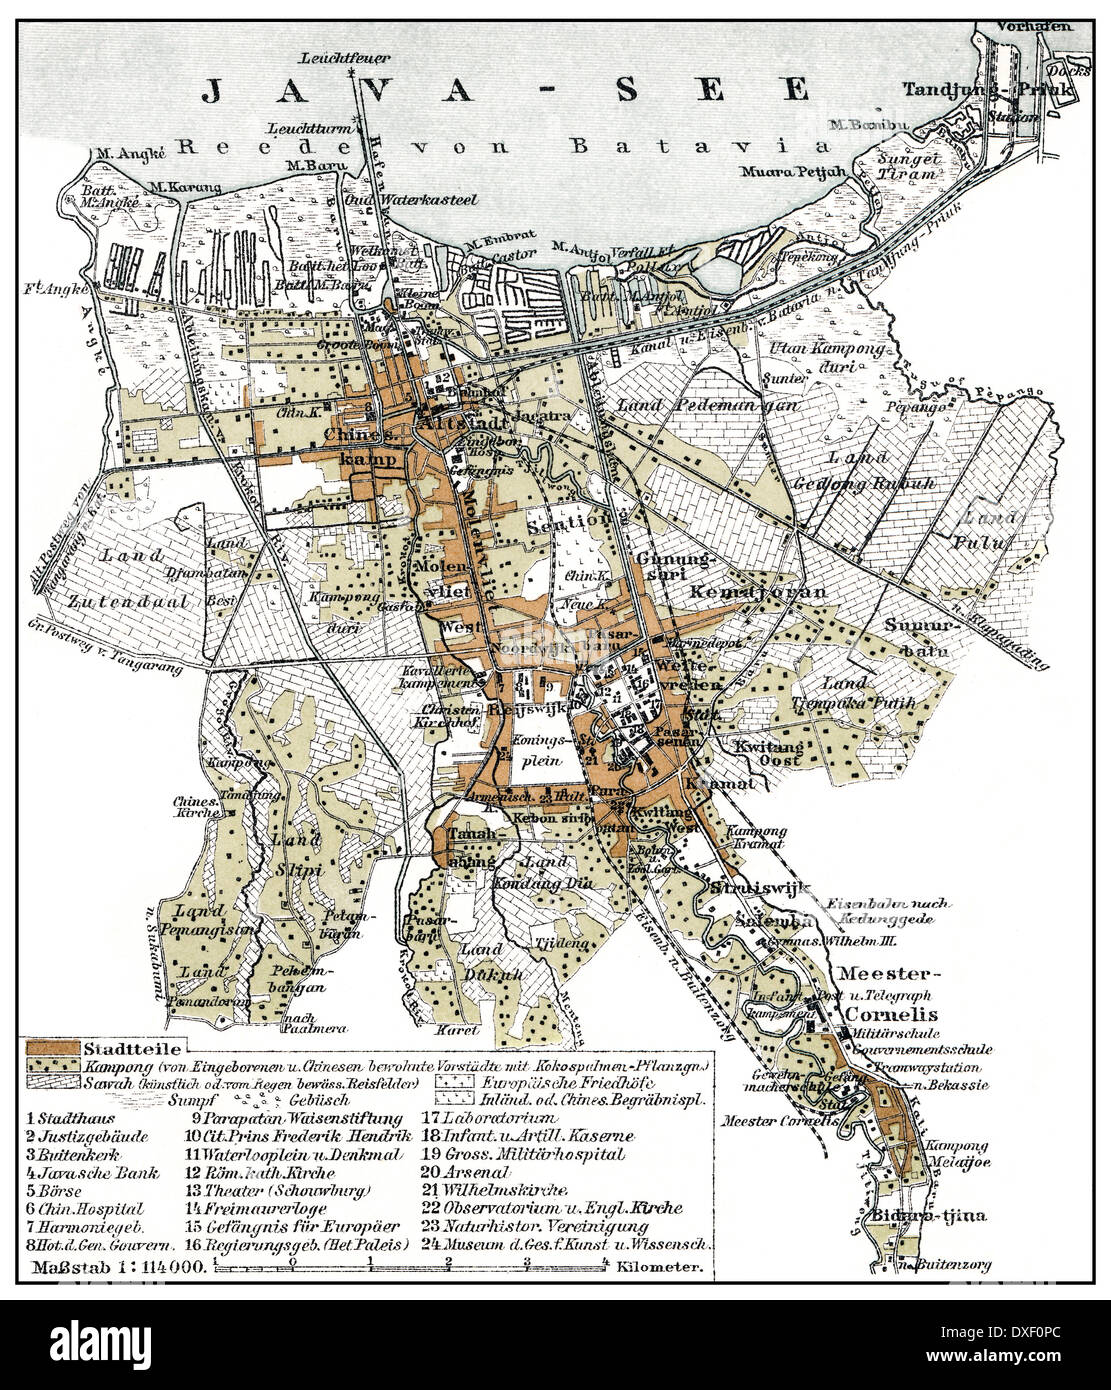 Historical map 1894 batavia dutch east indies now jakarta stock historical map 1894 batavia dutch east indies now jakarta indonesia southeast asia gumiabroncs Image collections